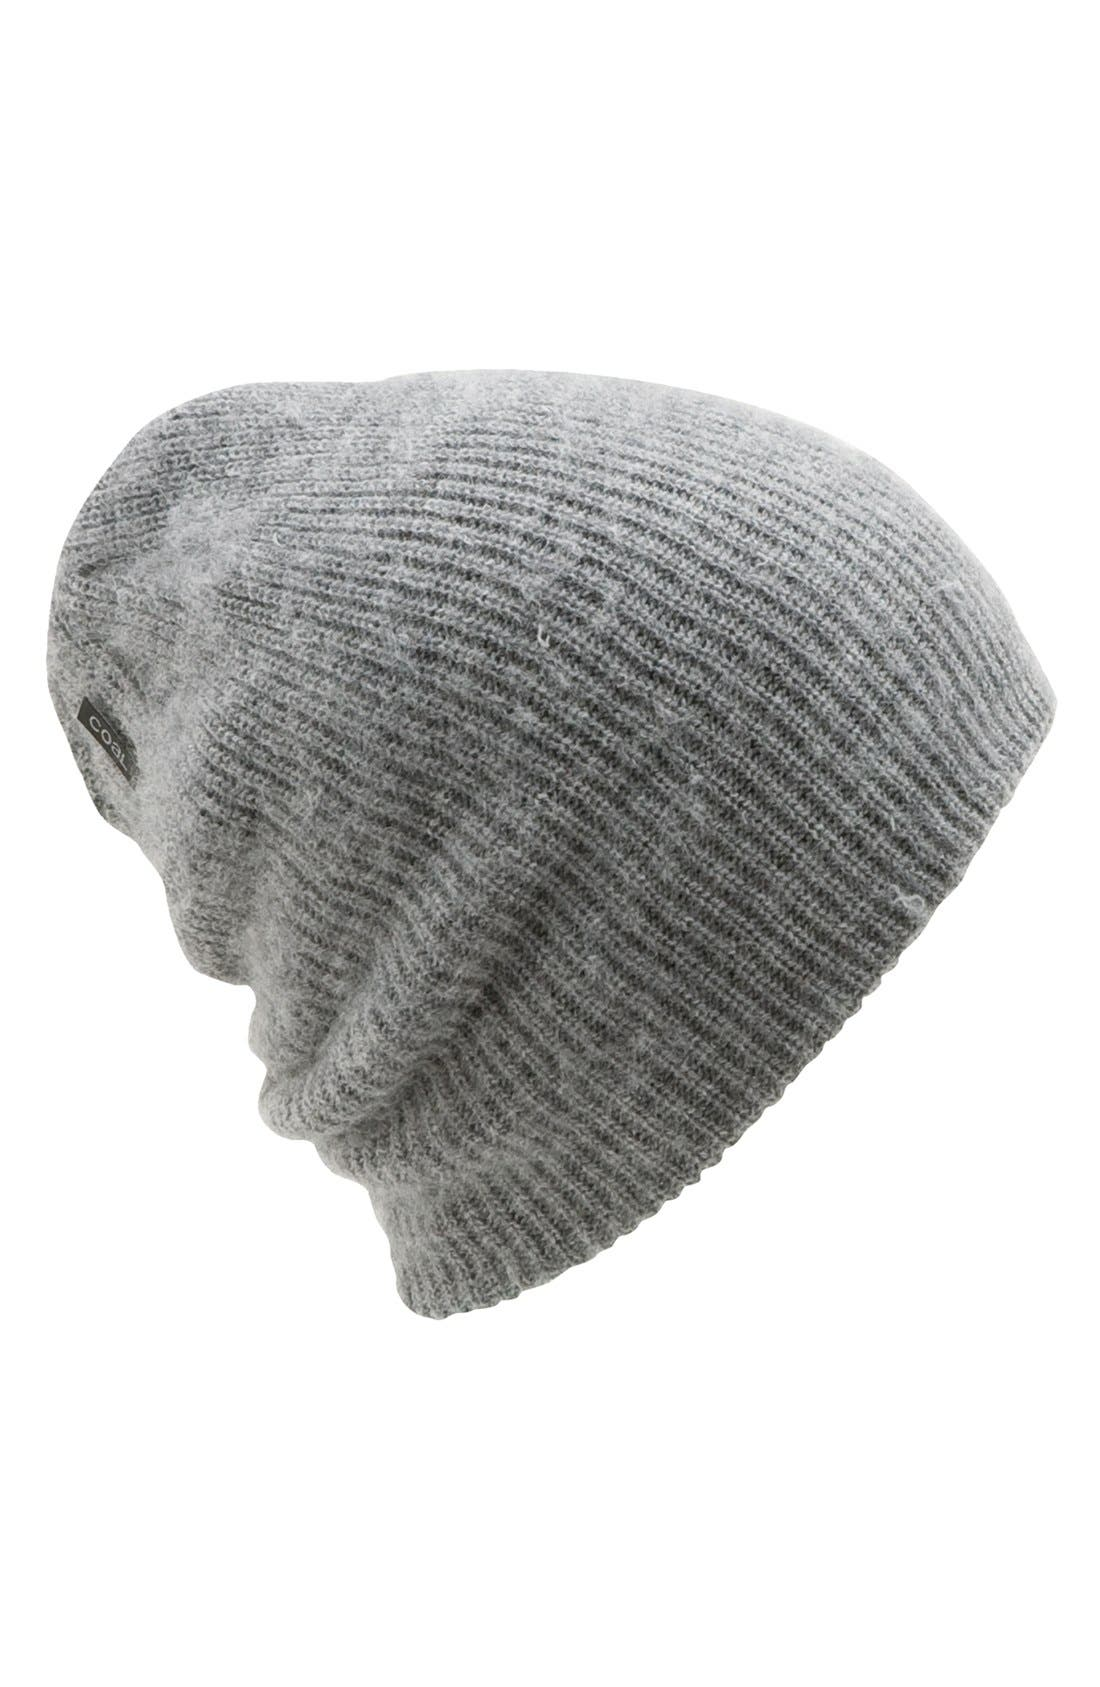 Alternate Image 1 Selected - Coal 'The Scotty' Slouchy Beanie